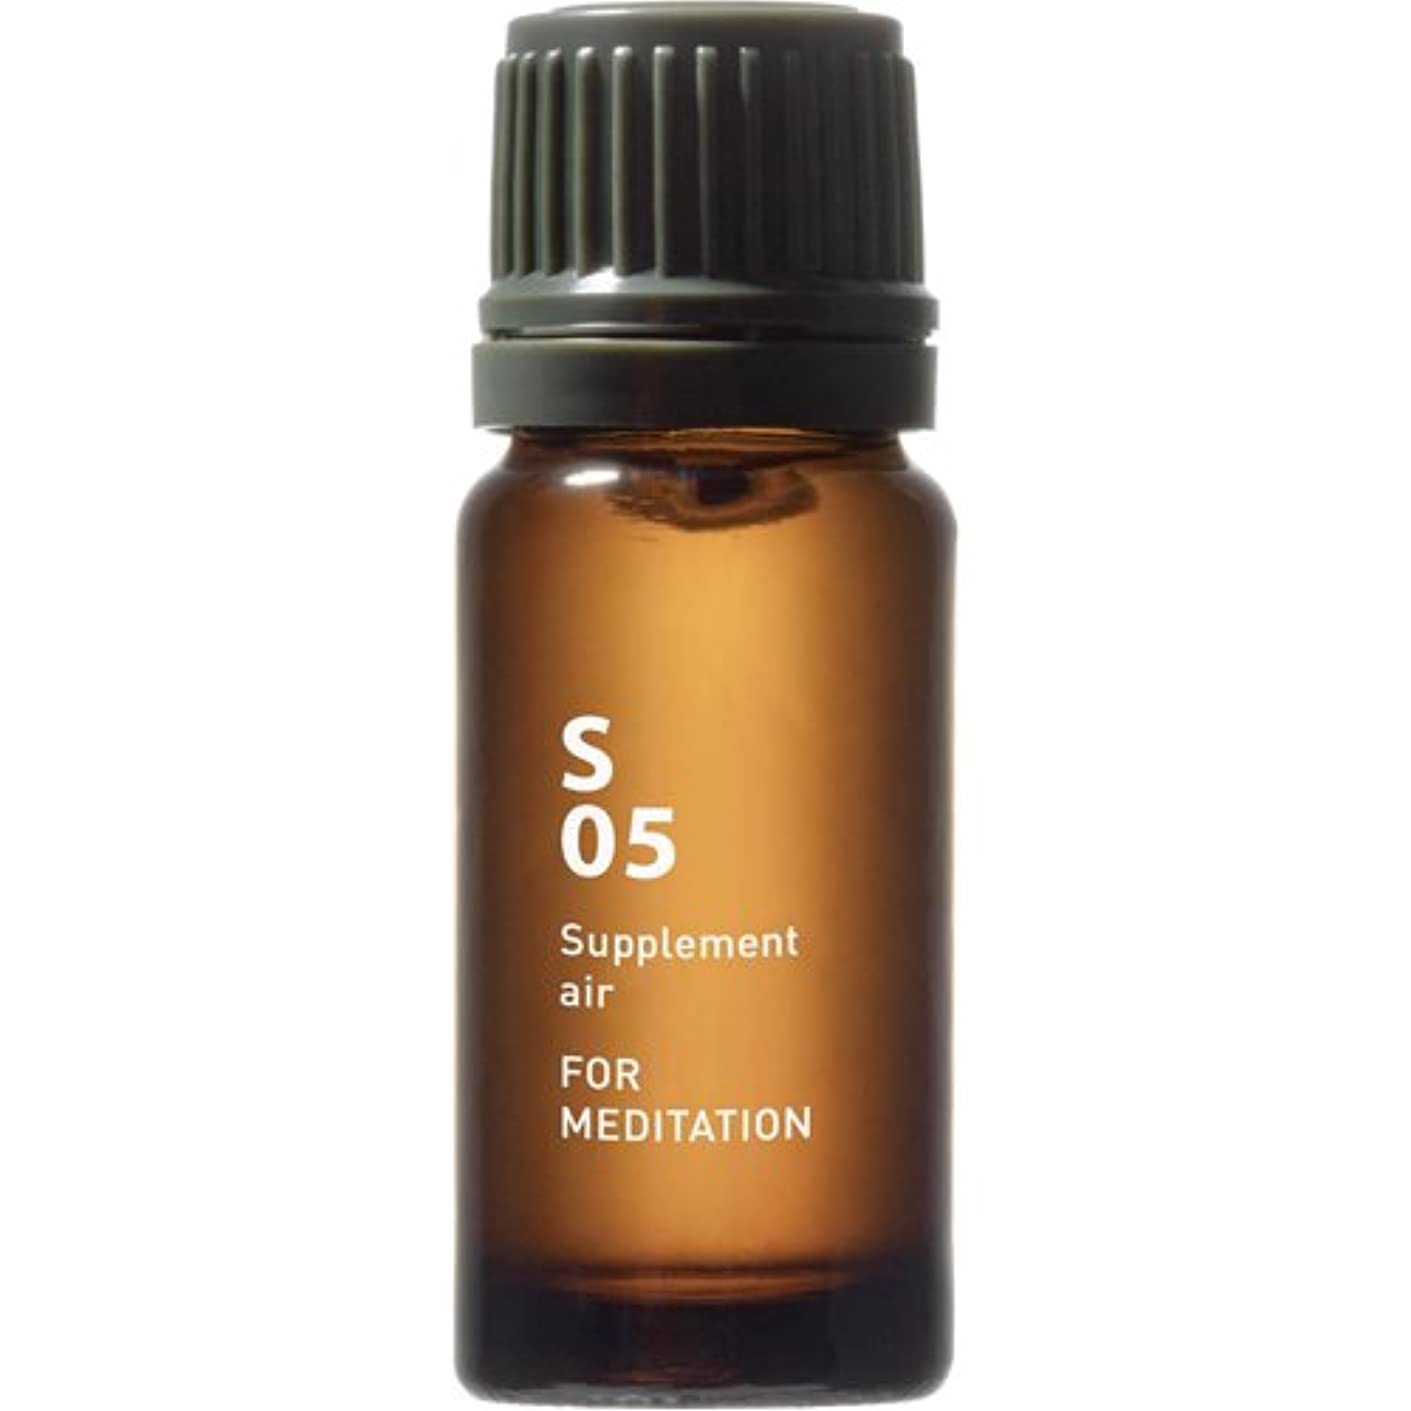 路地原子ヒステリックS05 FOR MEDITATION Supplement air 10ml